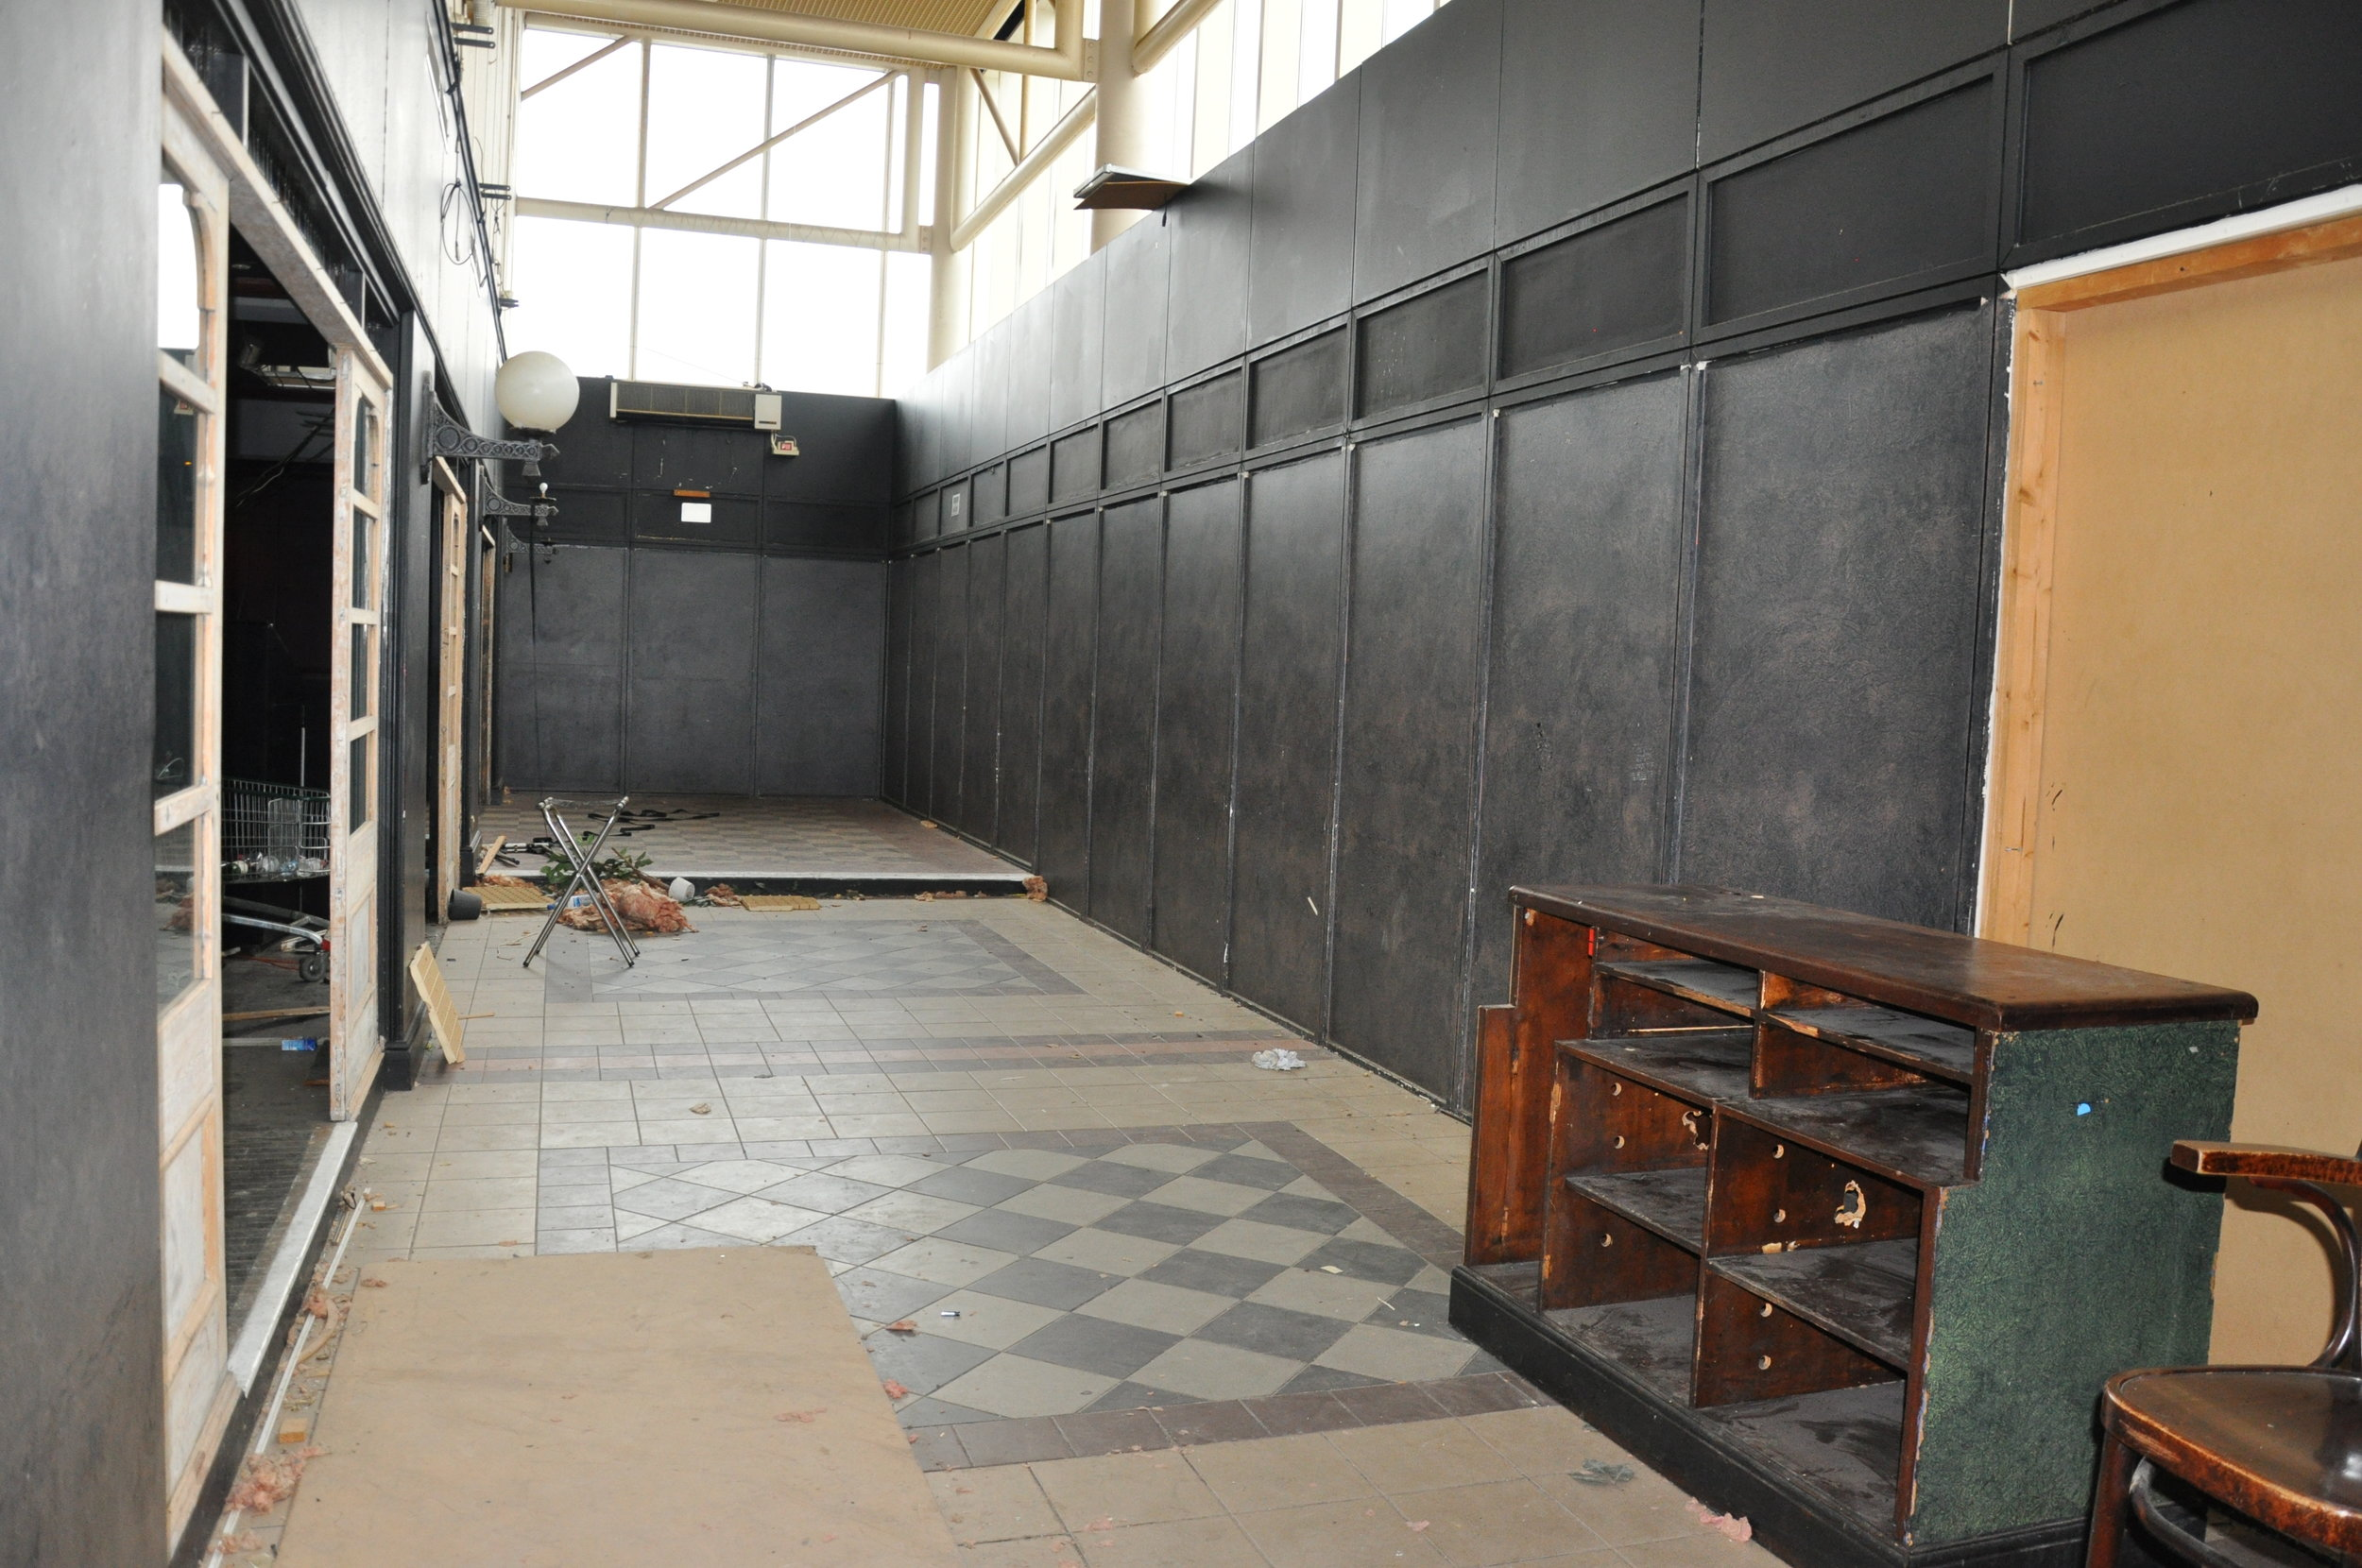 Before | left wall will be removed to open up the space for café tables